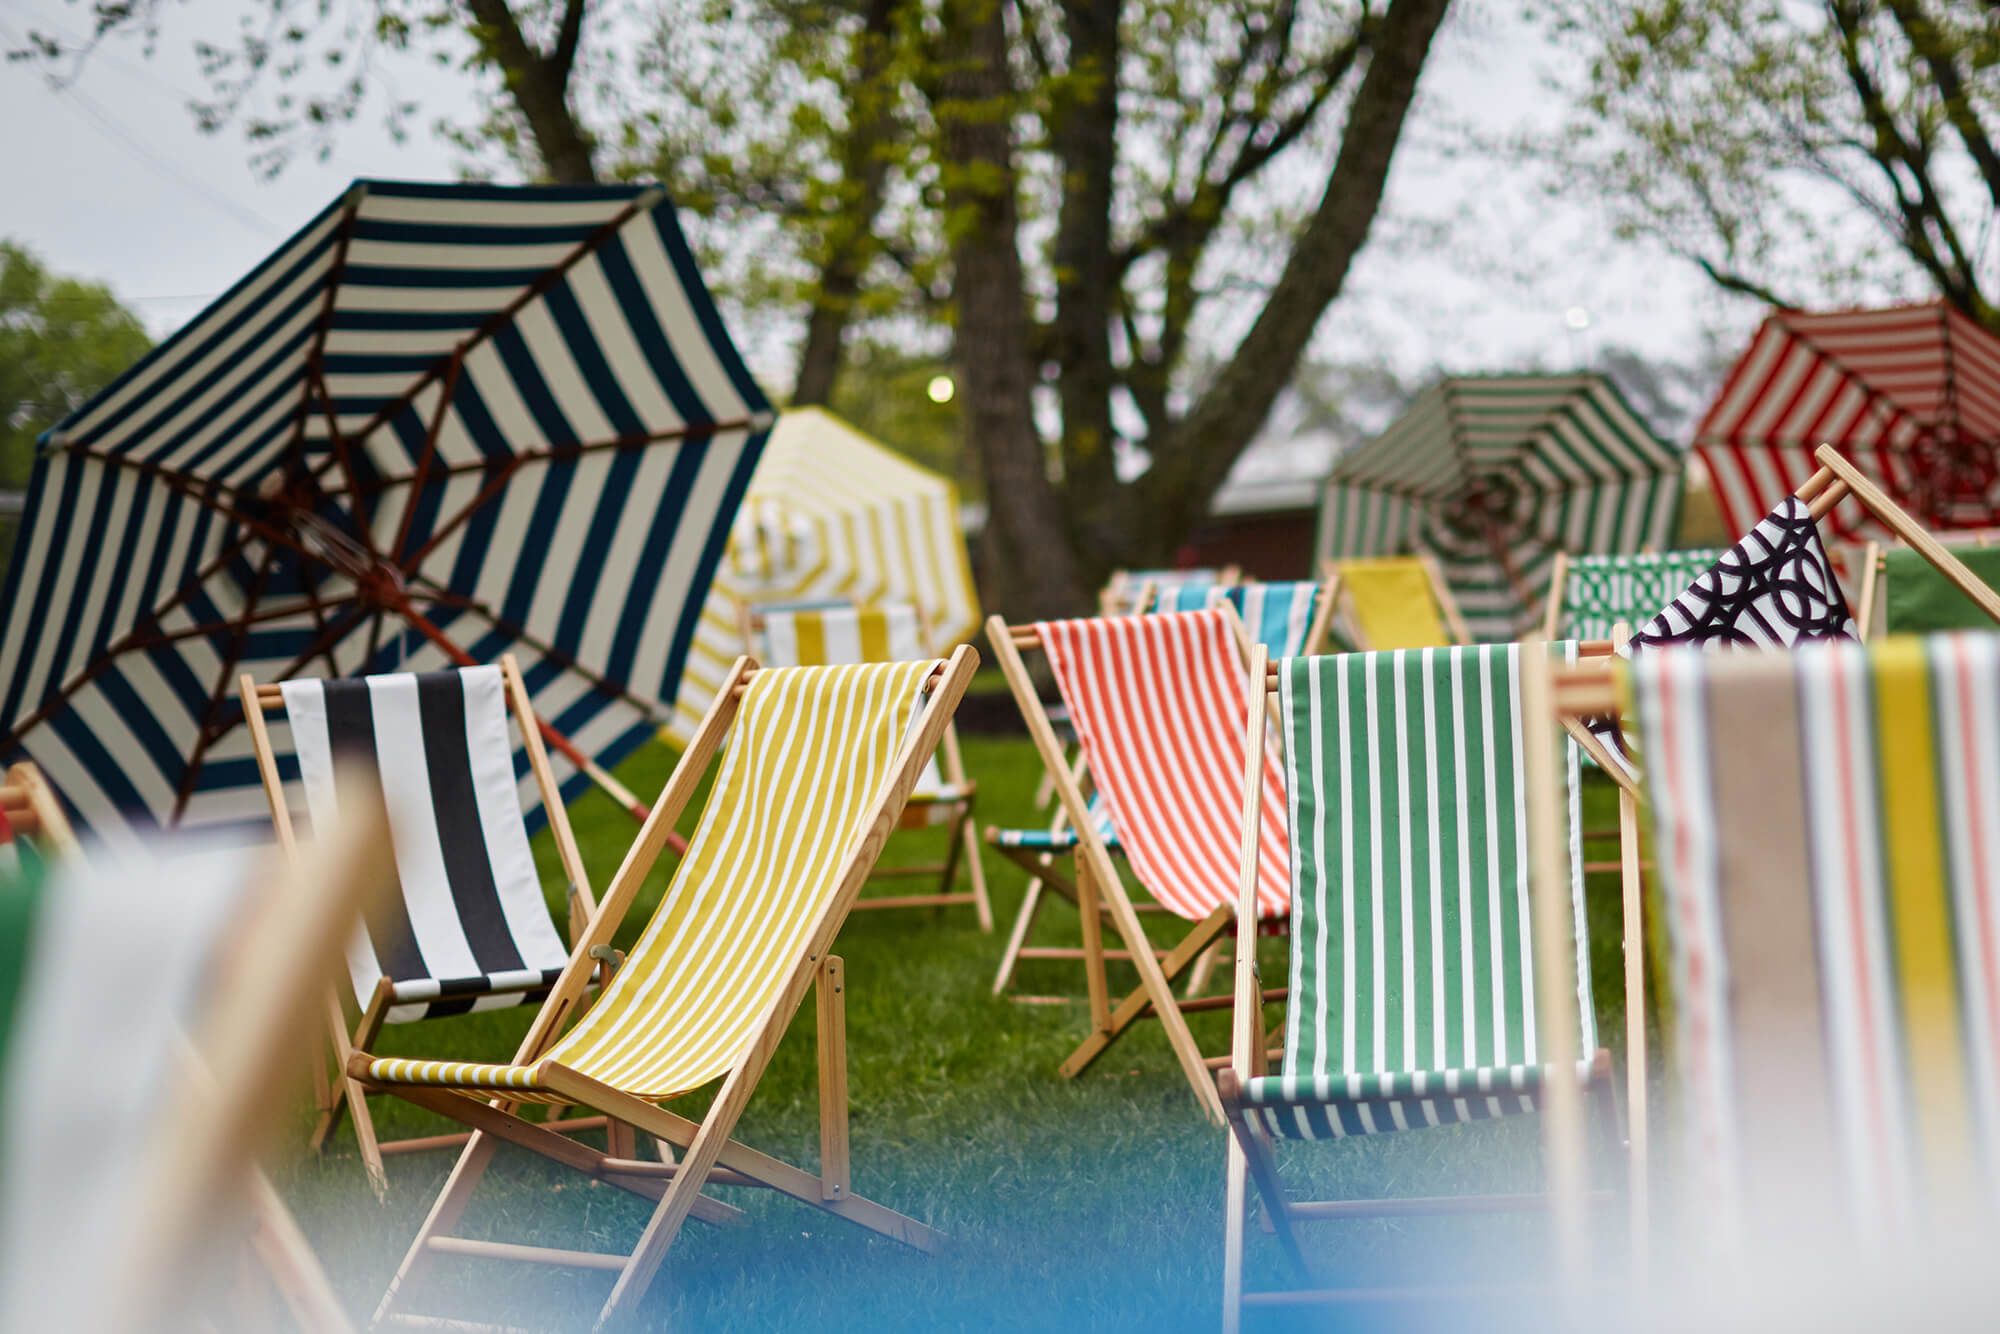 Brightly colored striped cabana chairs and umbrellas sit on the lawn